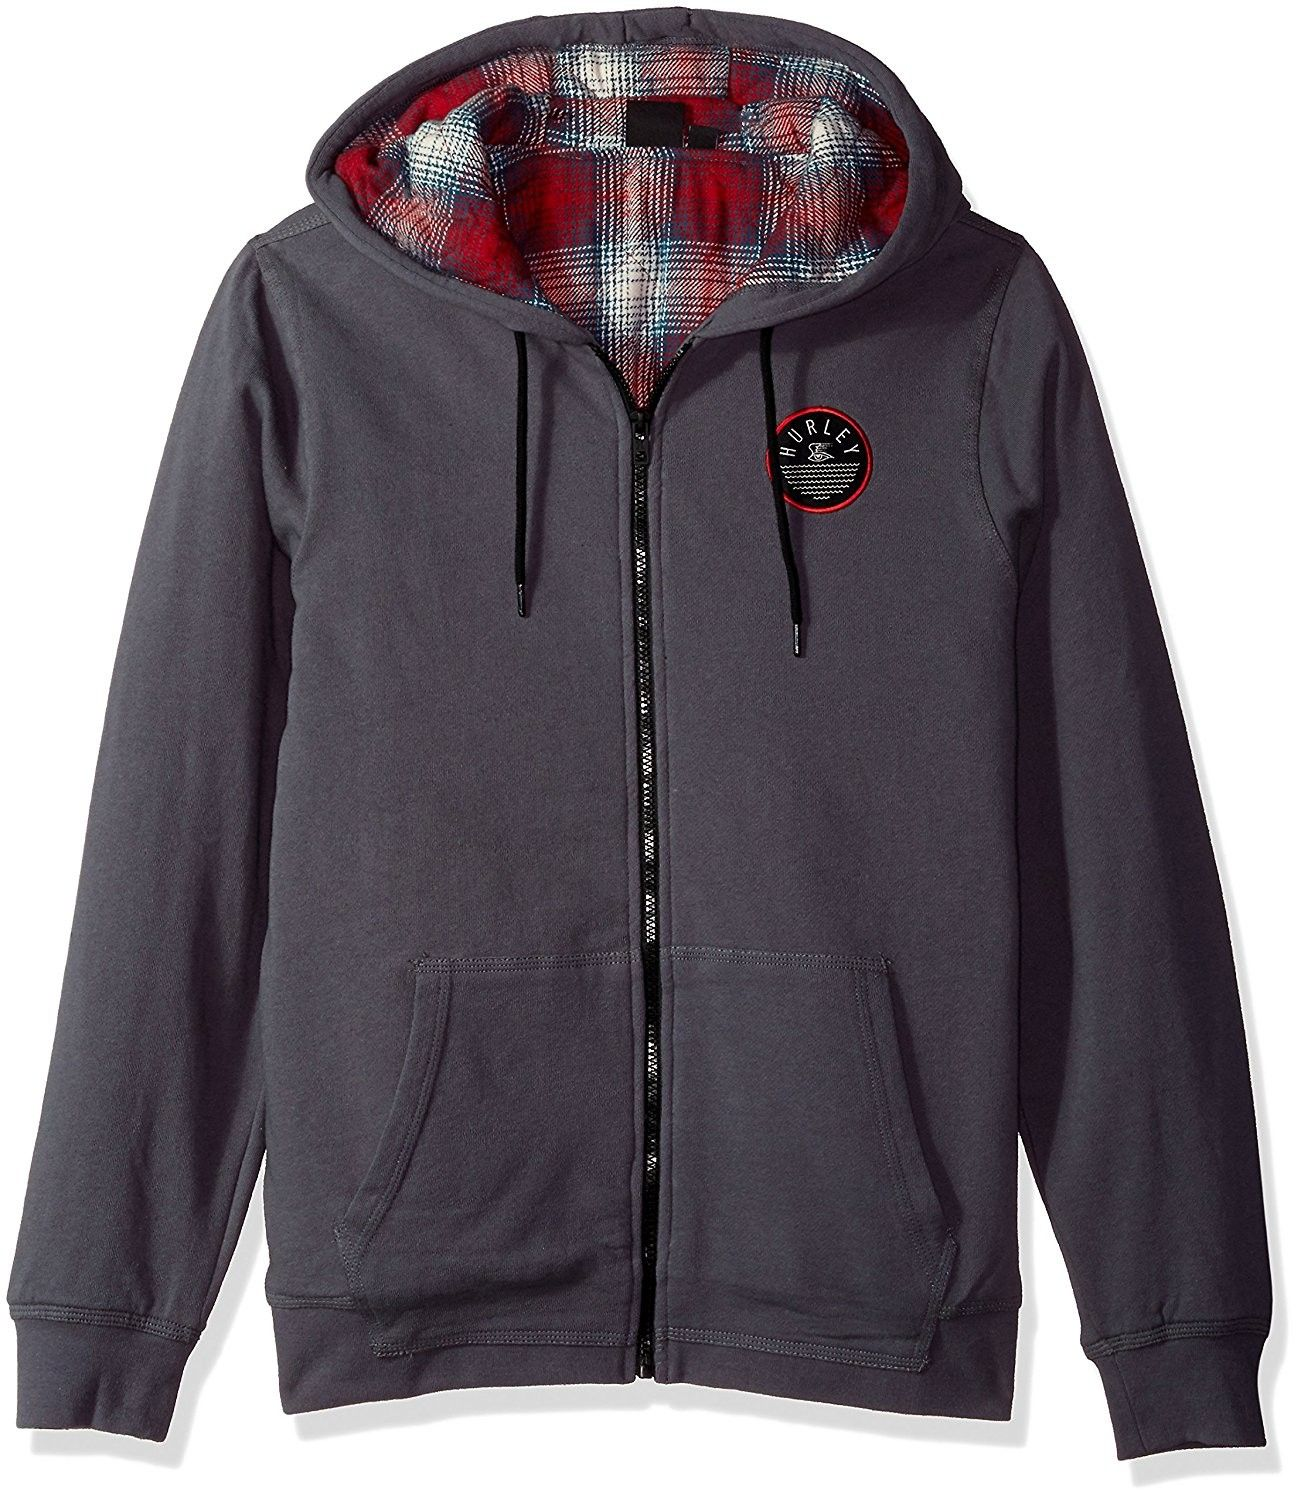 Mens hooded flannel jacket  Menus Flannel Lined Zip up Two Layer Hoodie with Patch Detail  Dark